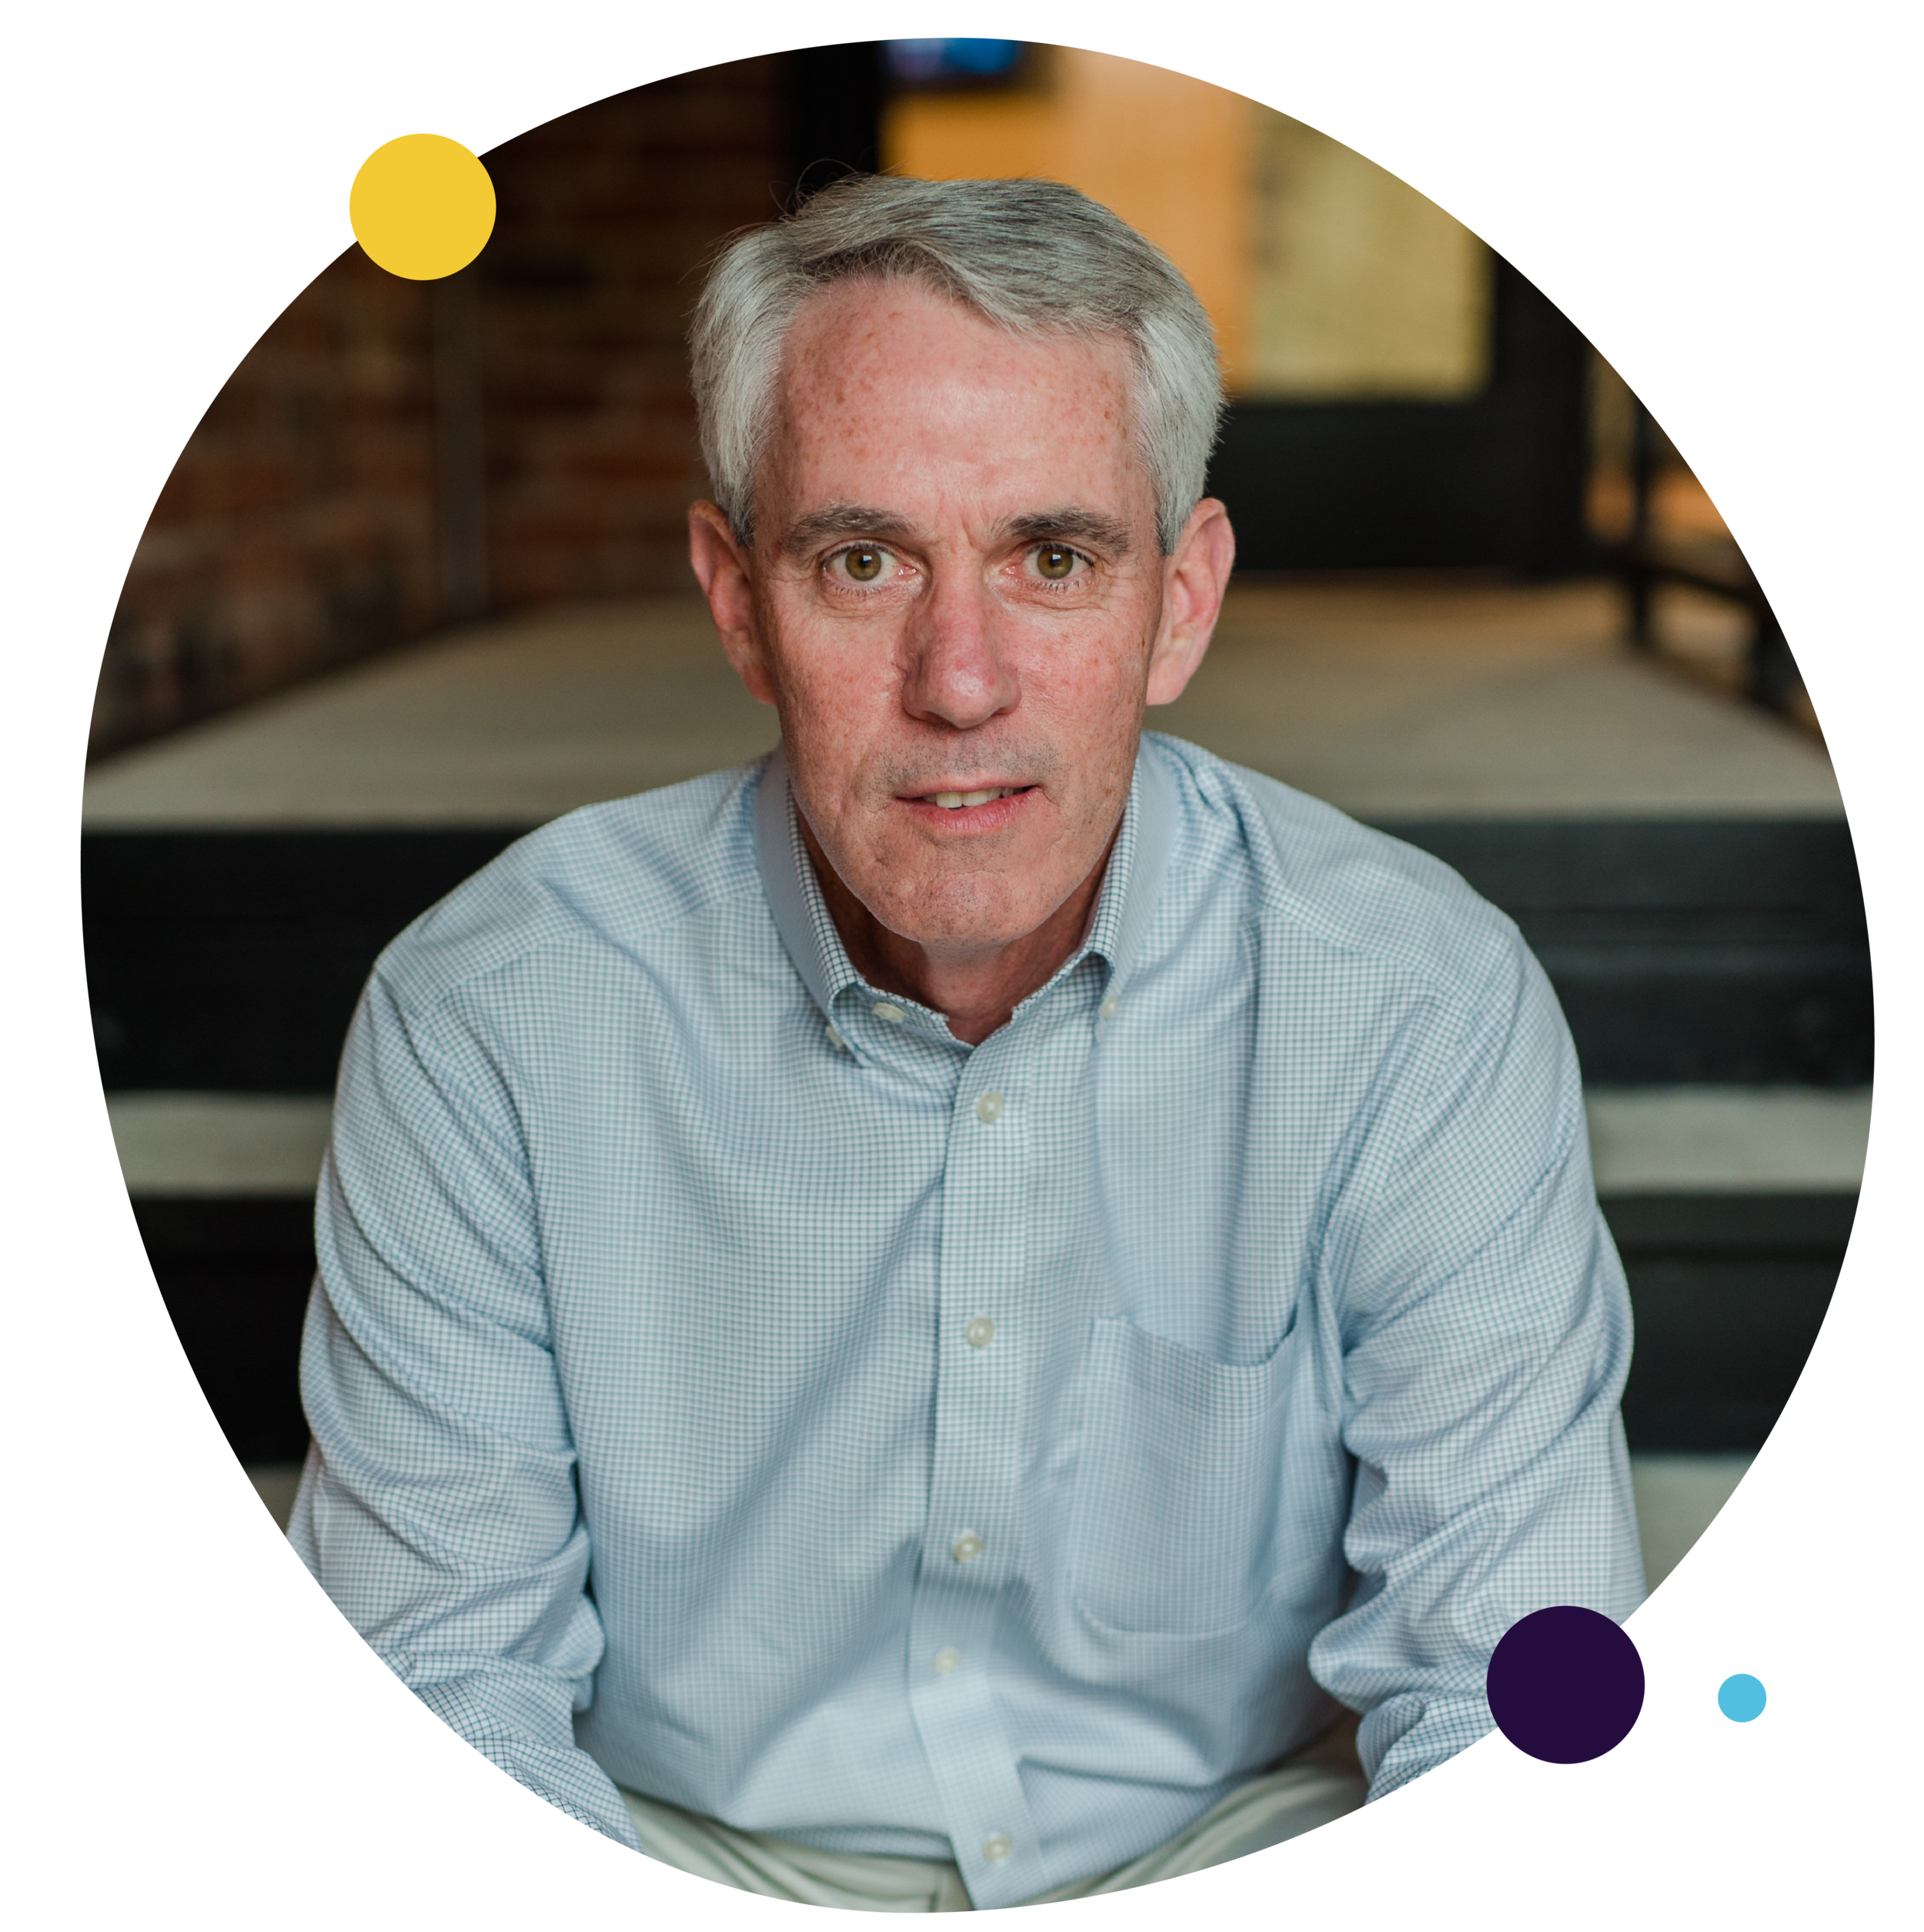 Tim O'Shea, Advisory Board - Sr. Director, Benefits Analytics, Ceridian & Clearview Logix Cofounder and CEOTim's favorite Fringe benefit: Doctors Without Borders